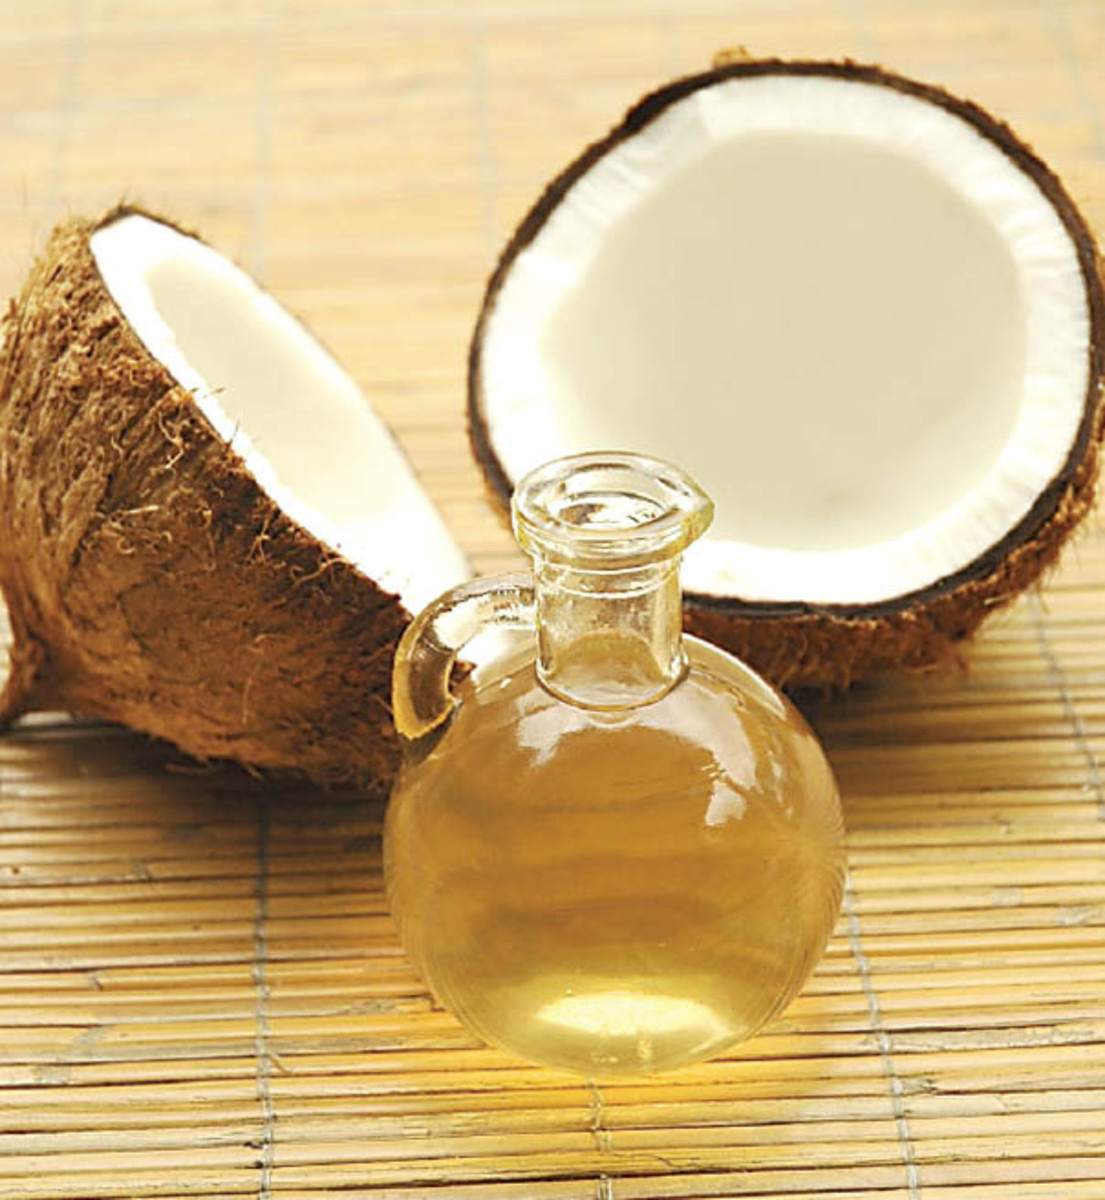 Honey and Organic Coconut Oil are effective against scarring from burns